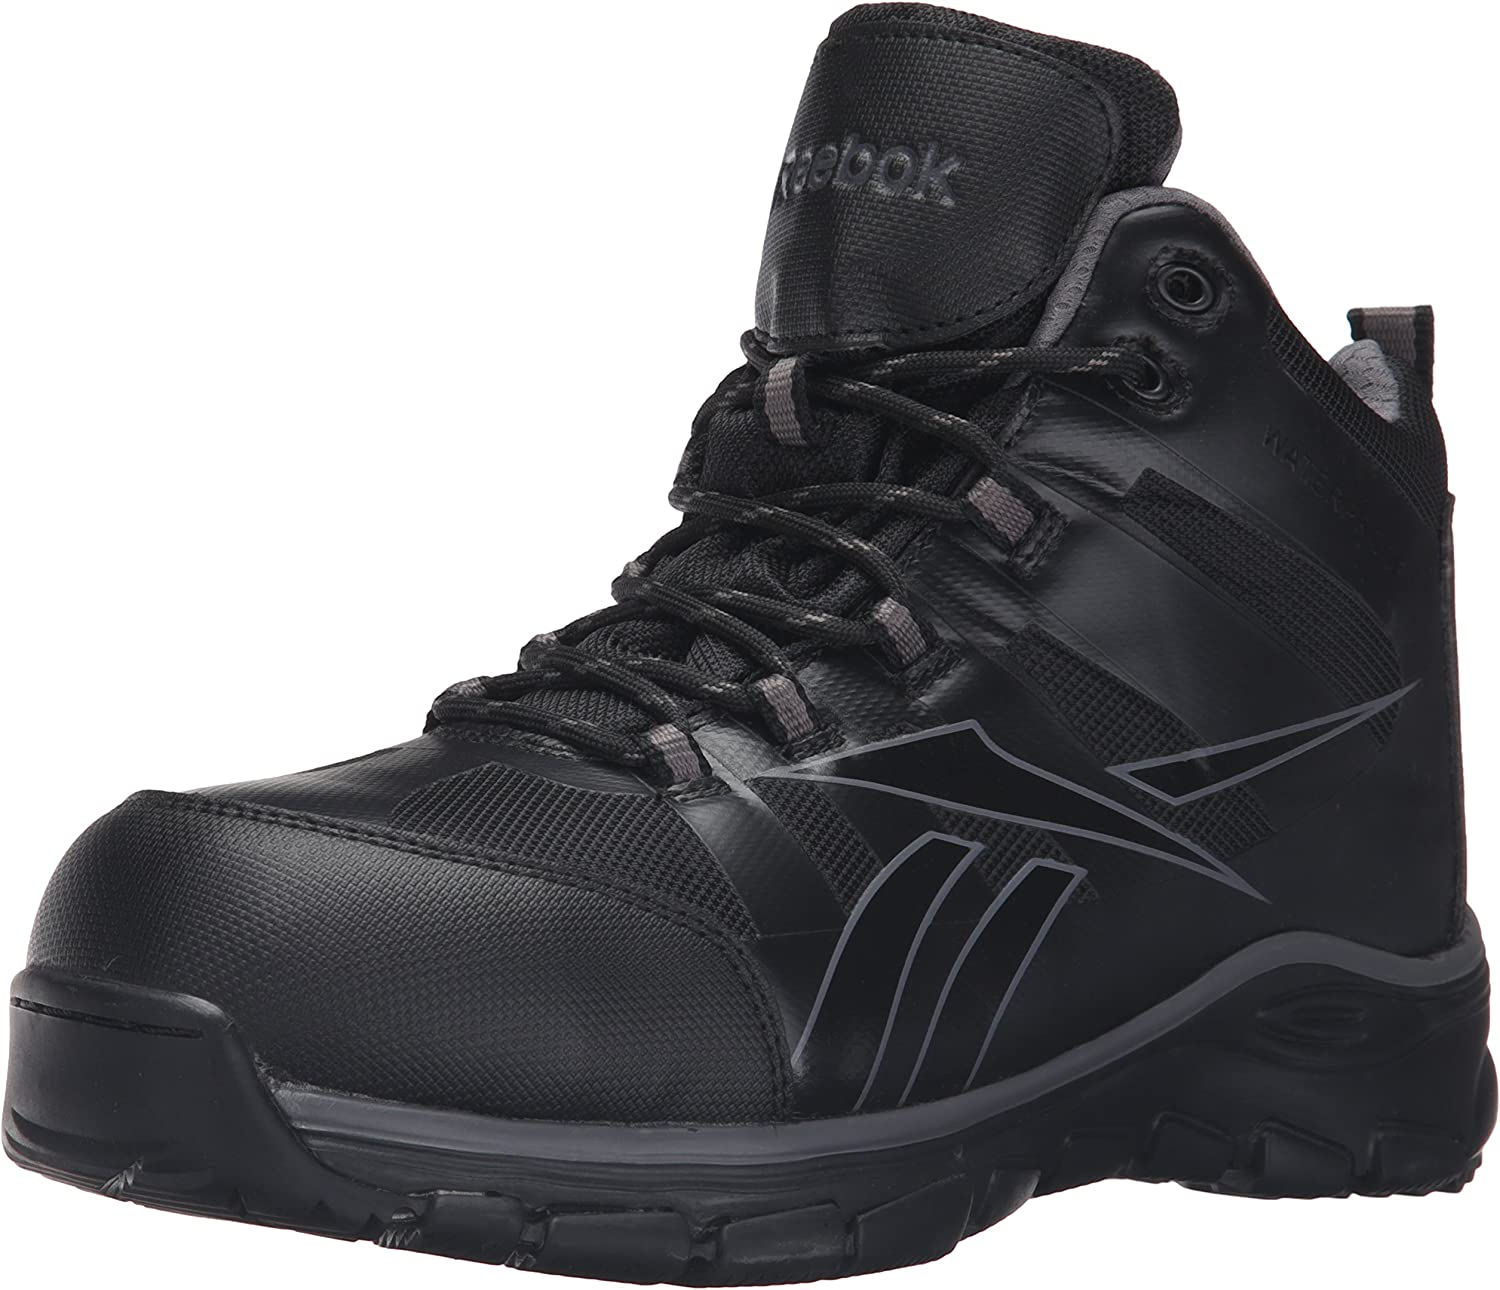 RB4513 Comp Toe Work Boot